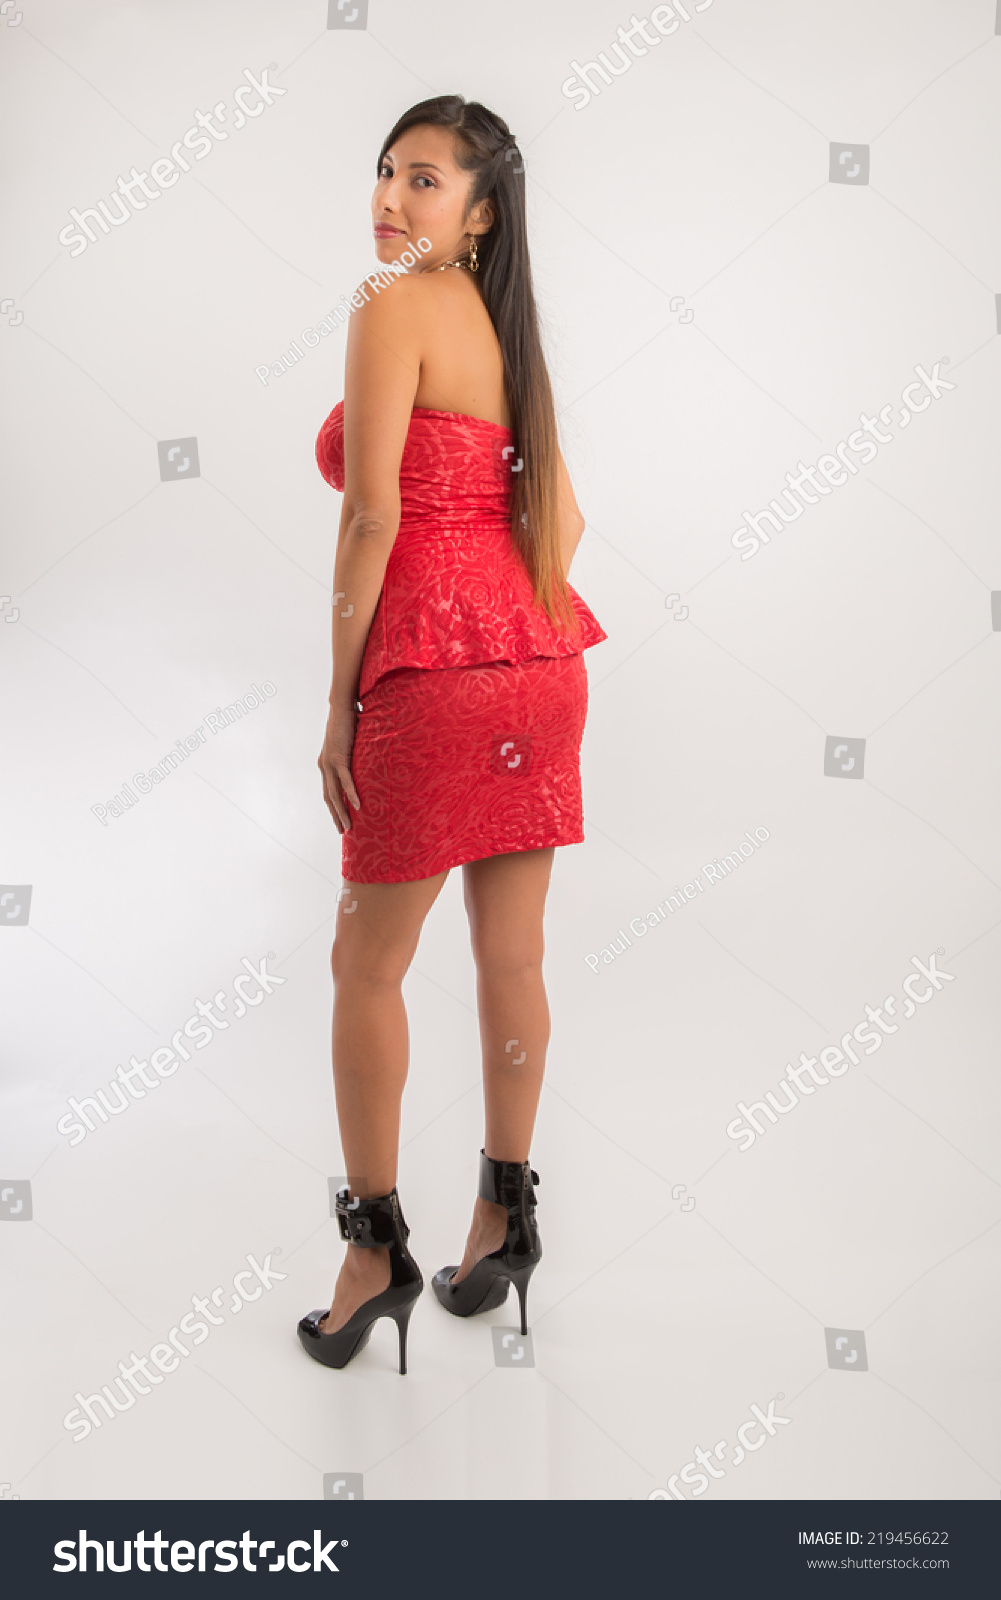 Woman Wearing Coral Color Cocktail Dress Stock Photo (Royalty Free ...